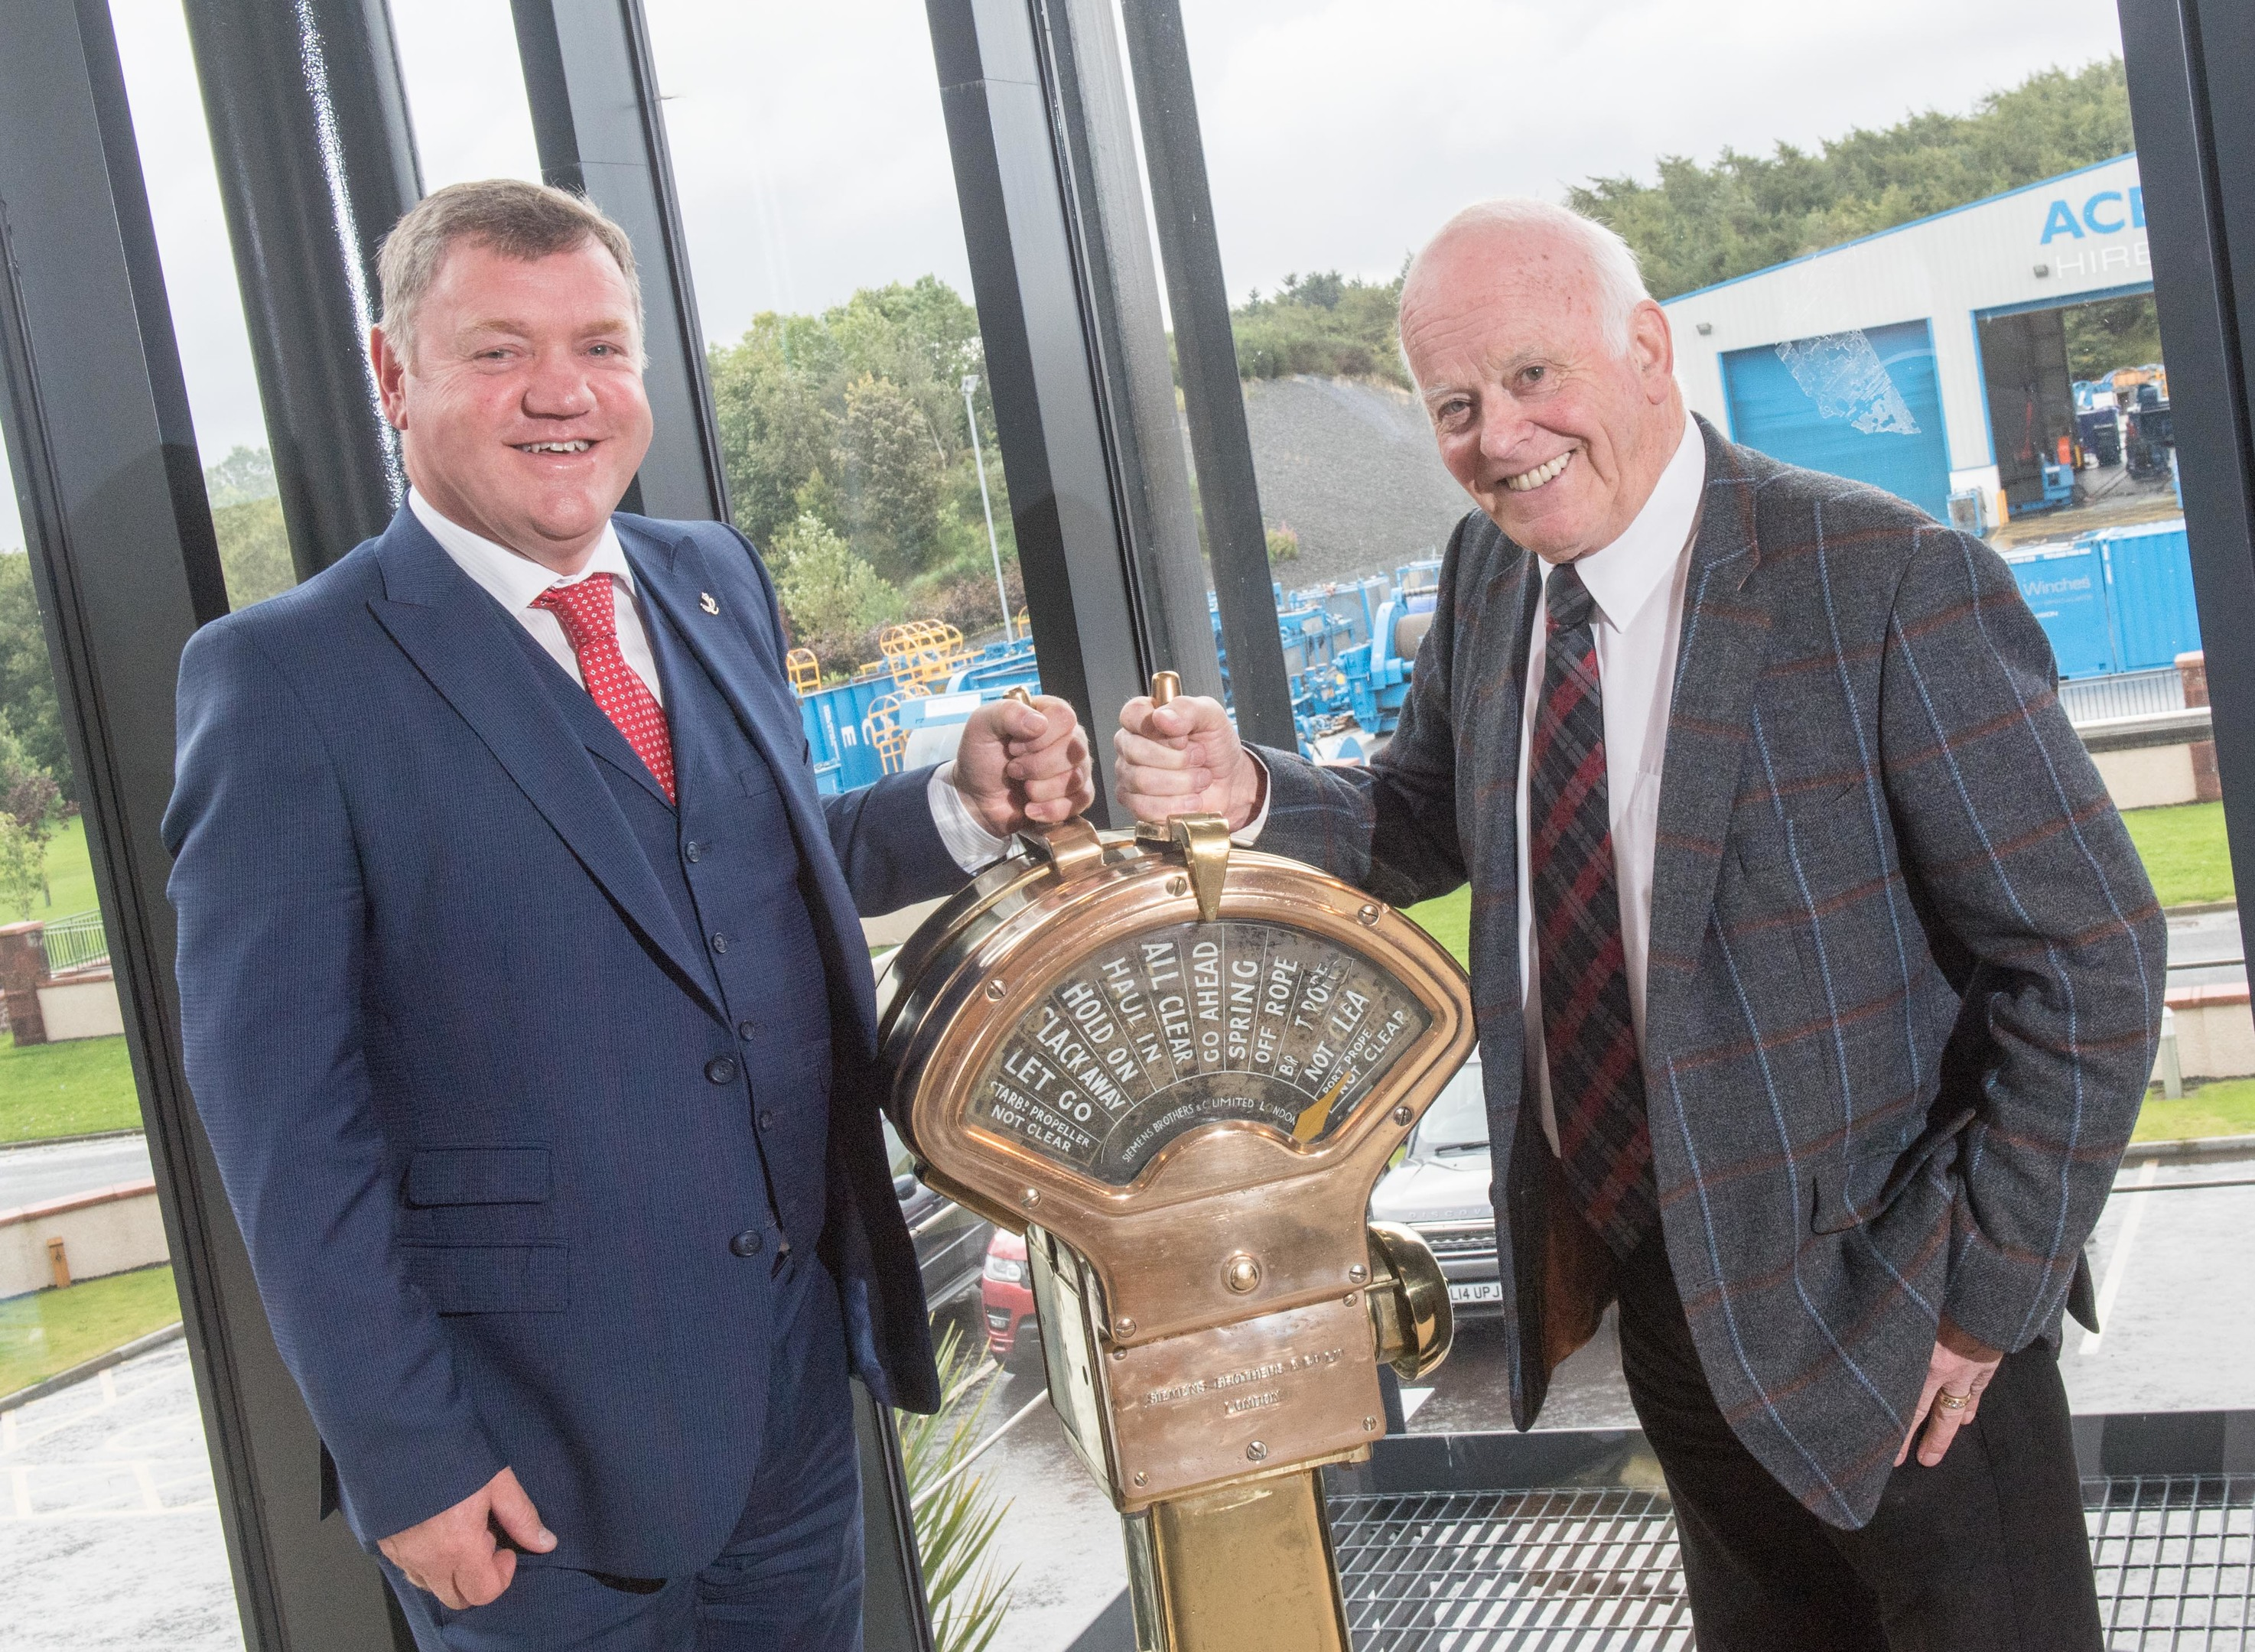 Aberdeen, Scotland, Friday 15th September 2017  Multi-disciplined design, engineering and manufacturing company, Balmoral Group Holdings Ltd, has taken a substantial stake in ACE Winches by investing £10m in the Turriff-based company.   Pictured is (l to r):  Alfie Cheyne, CEO and founder of ACE Winches, Jim Milne, chairman and managing director at Balmoral Group,      Picture by Michal Wachucik / Abermedia